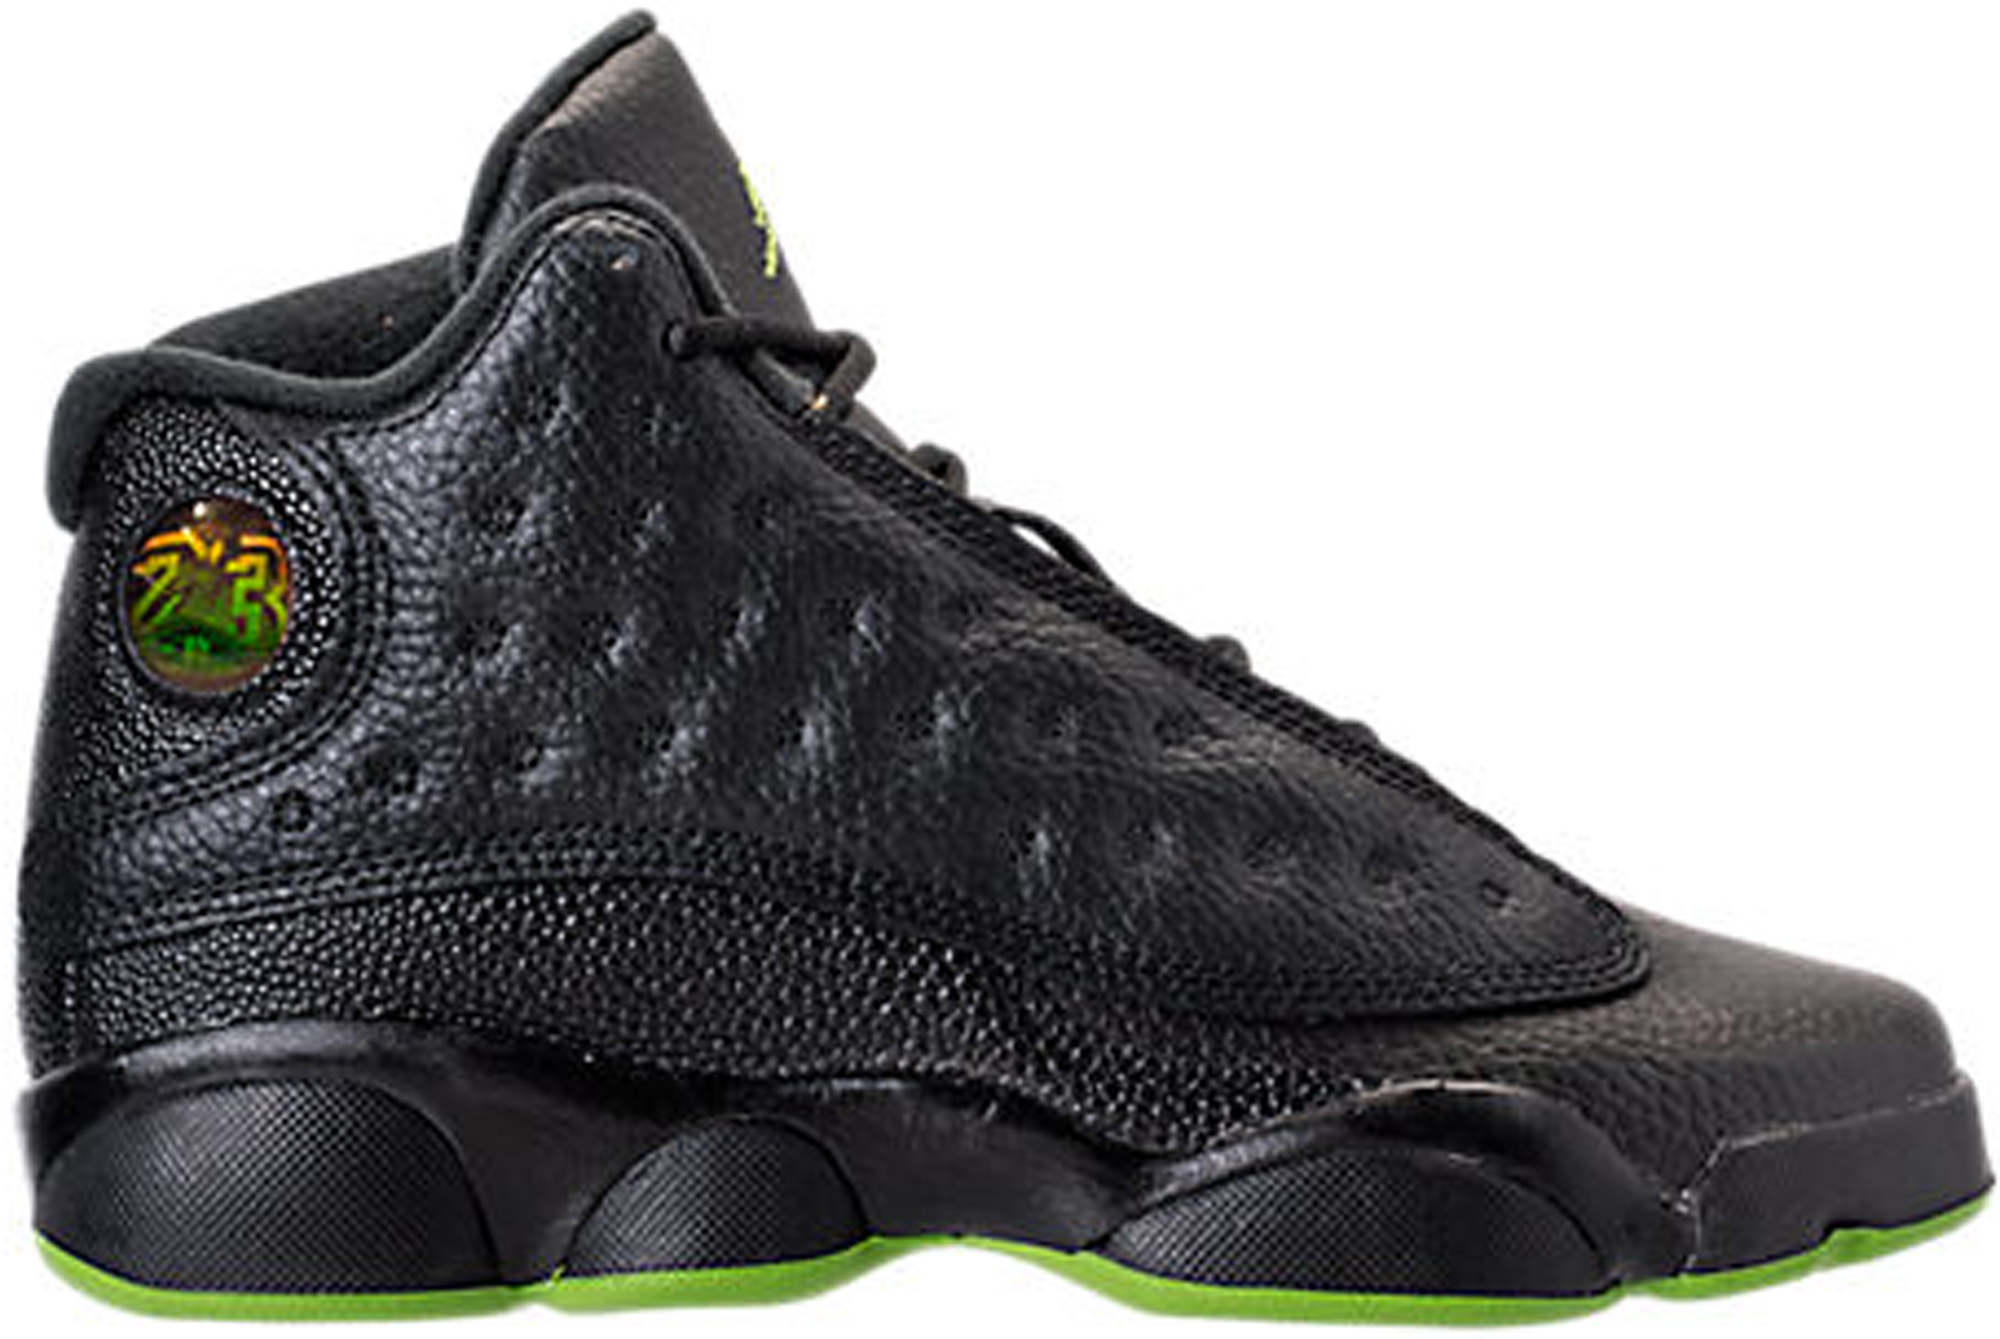 Jordan 13 Retro Altitude 2017 (GS)